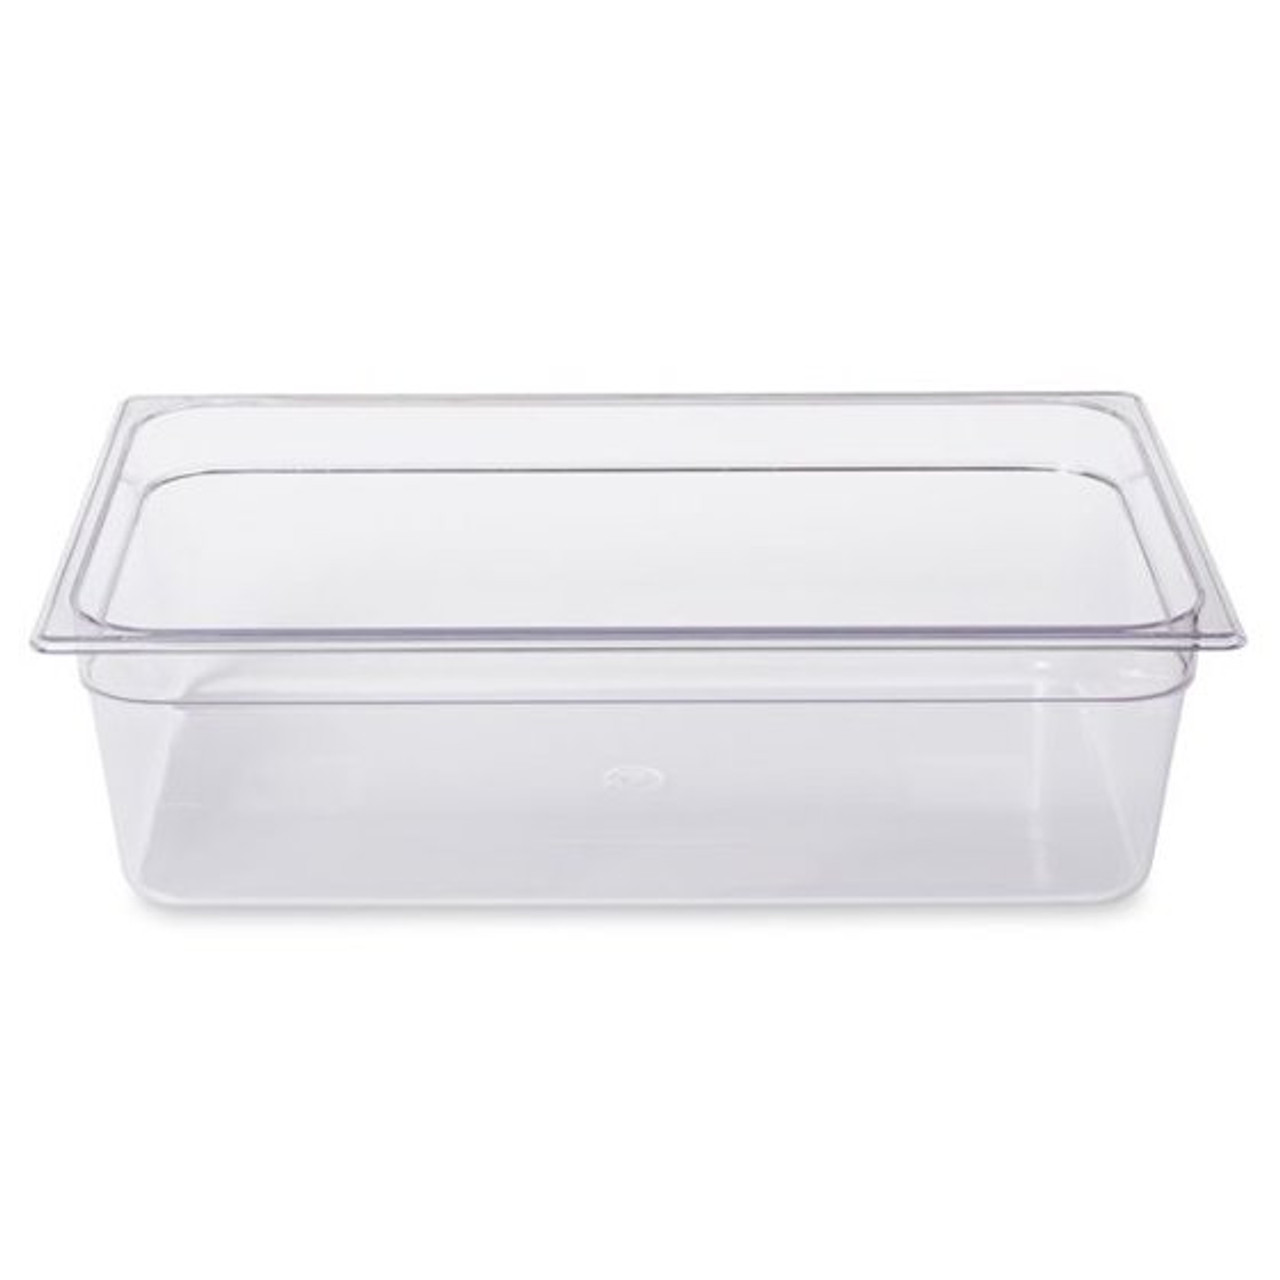 Rubbermaid Gastronorm Food Pan 1/1 150 mm - Clear - FG132P00CLR